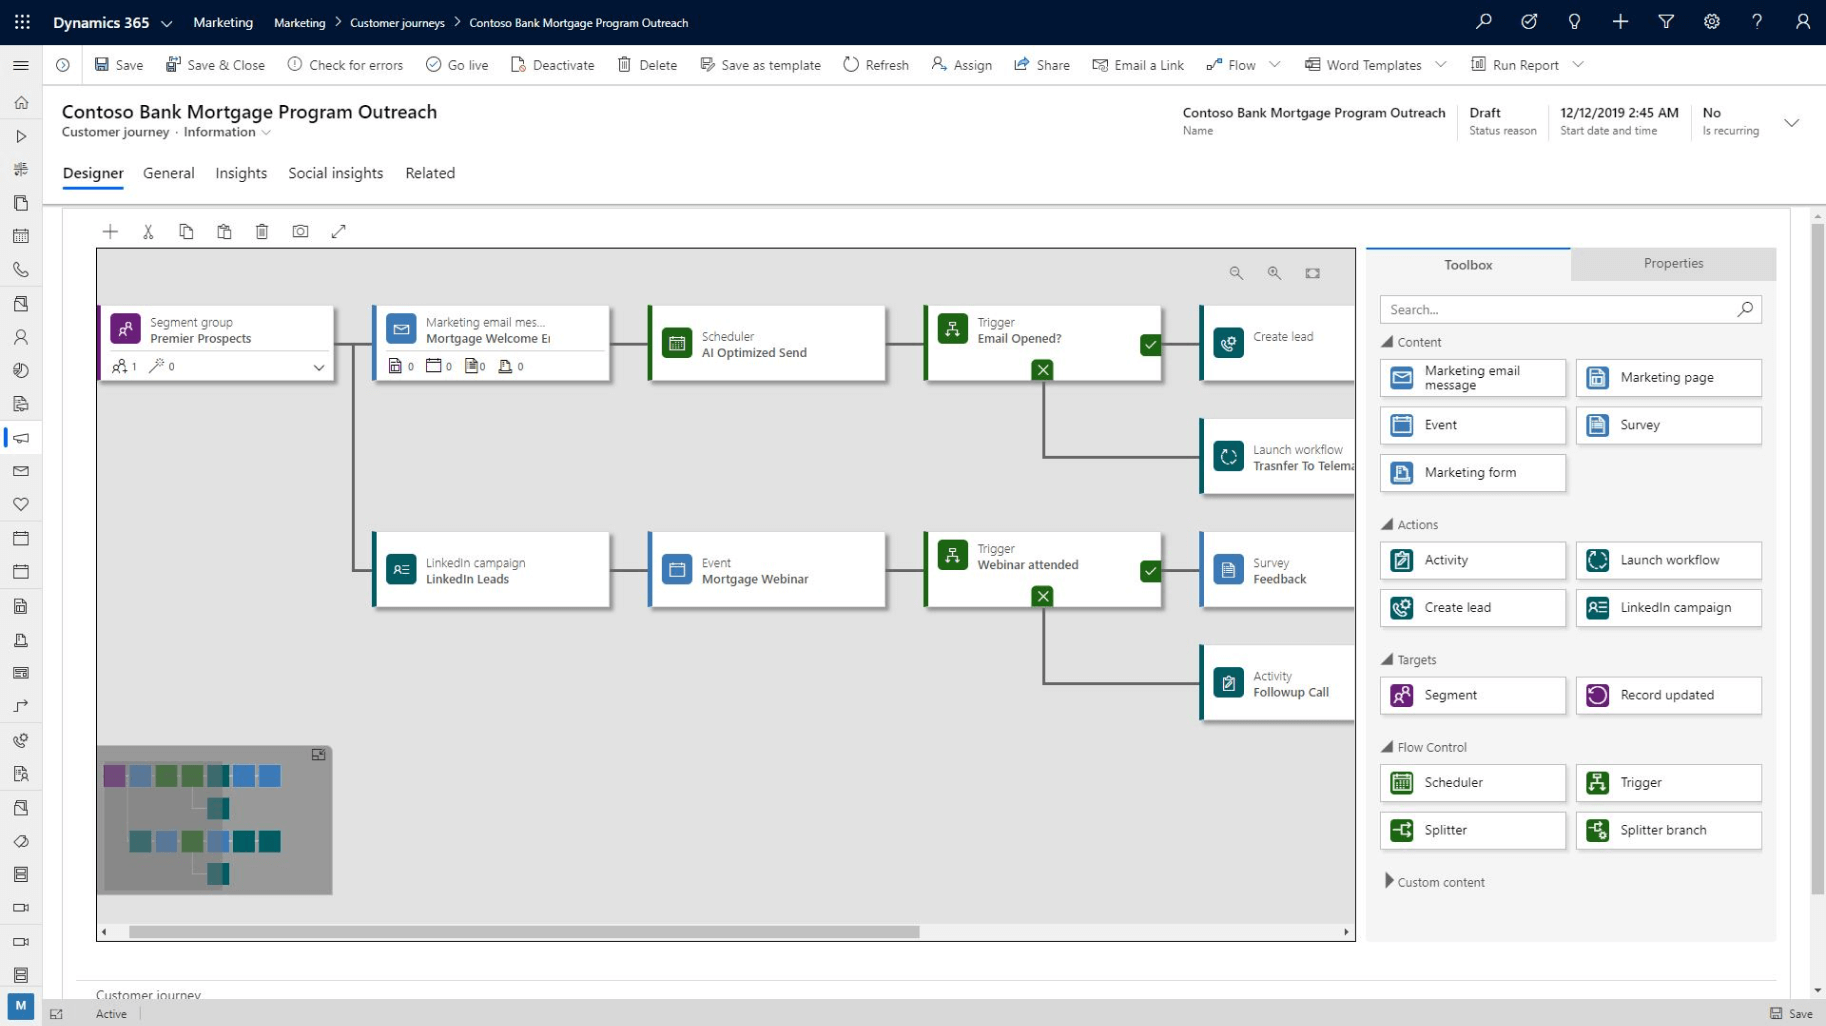 Microsoft Dynamics 365 Marketing Workflow